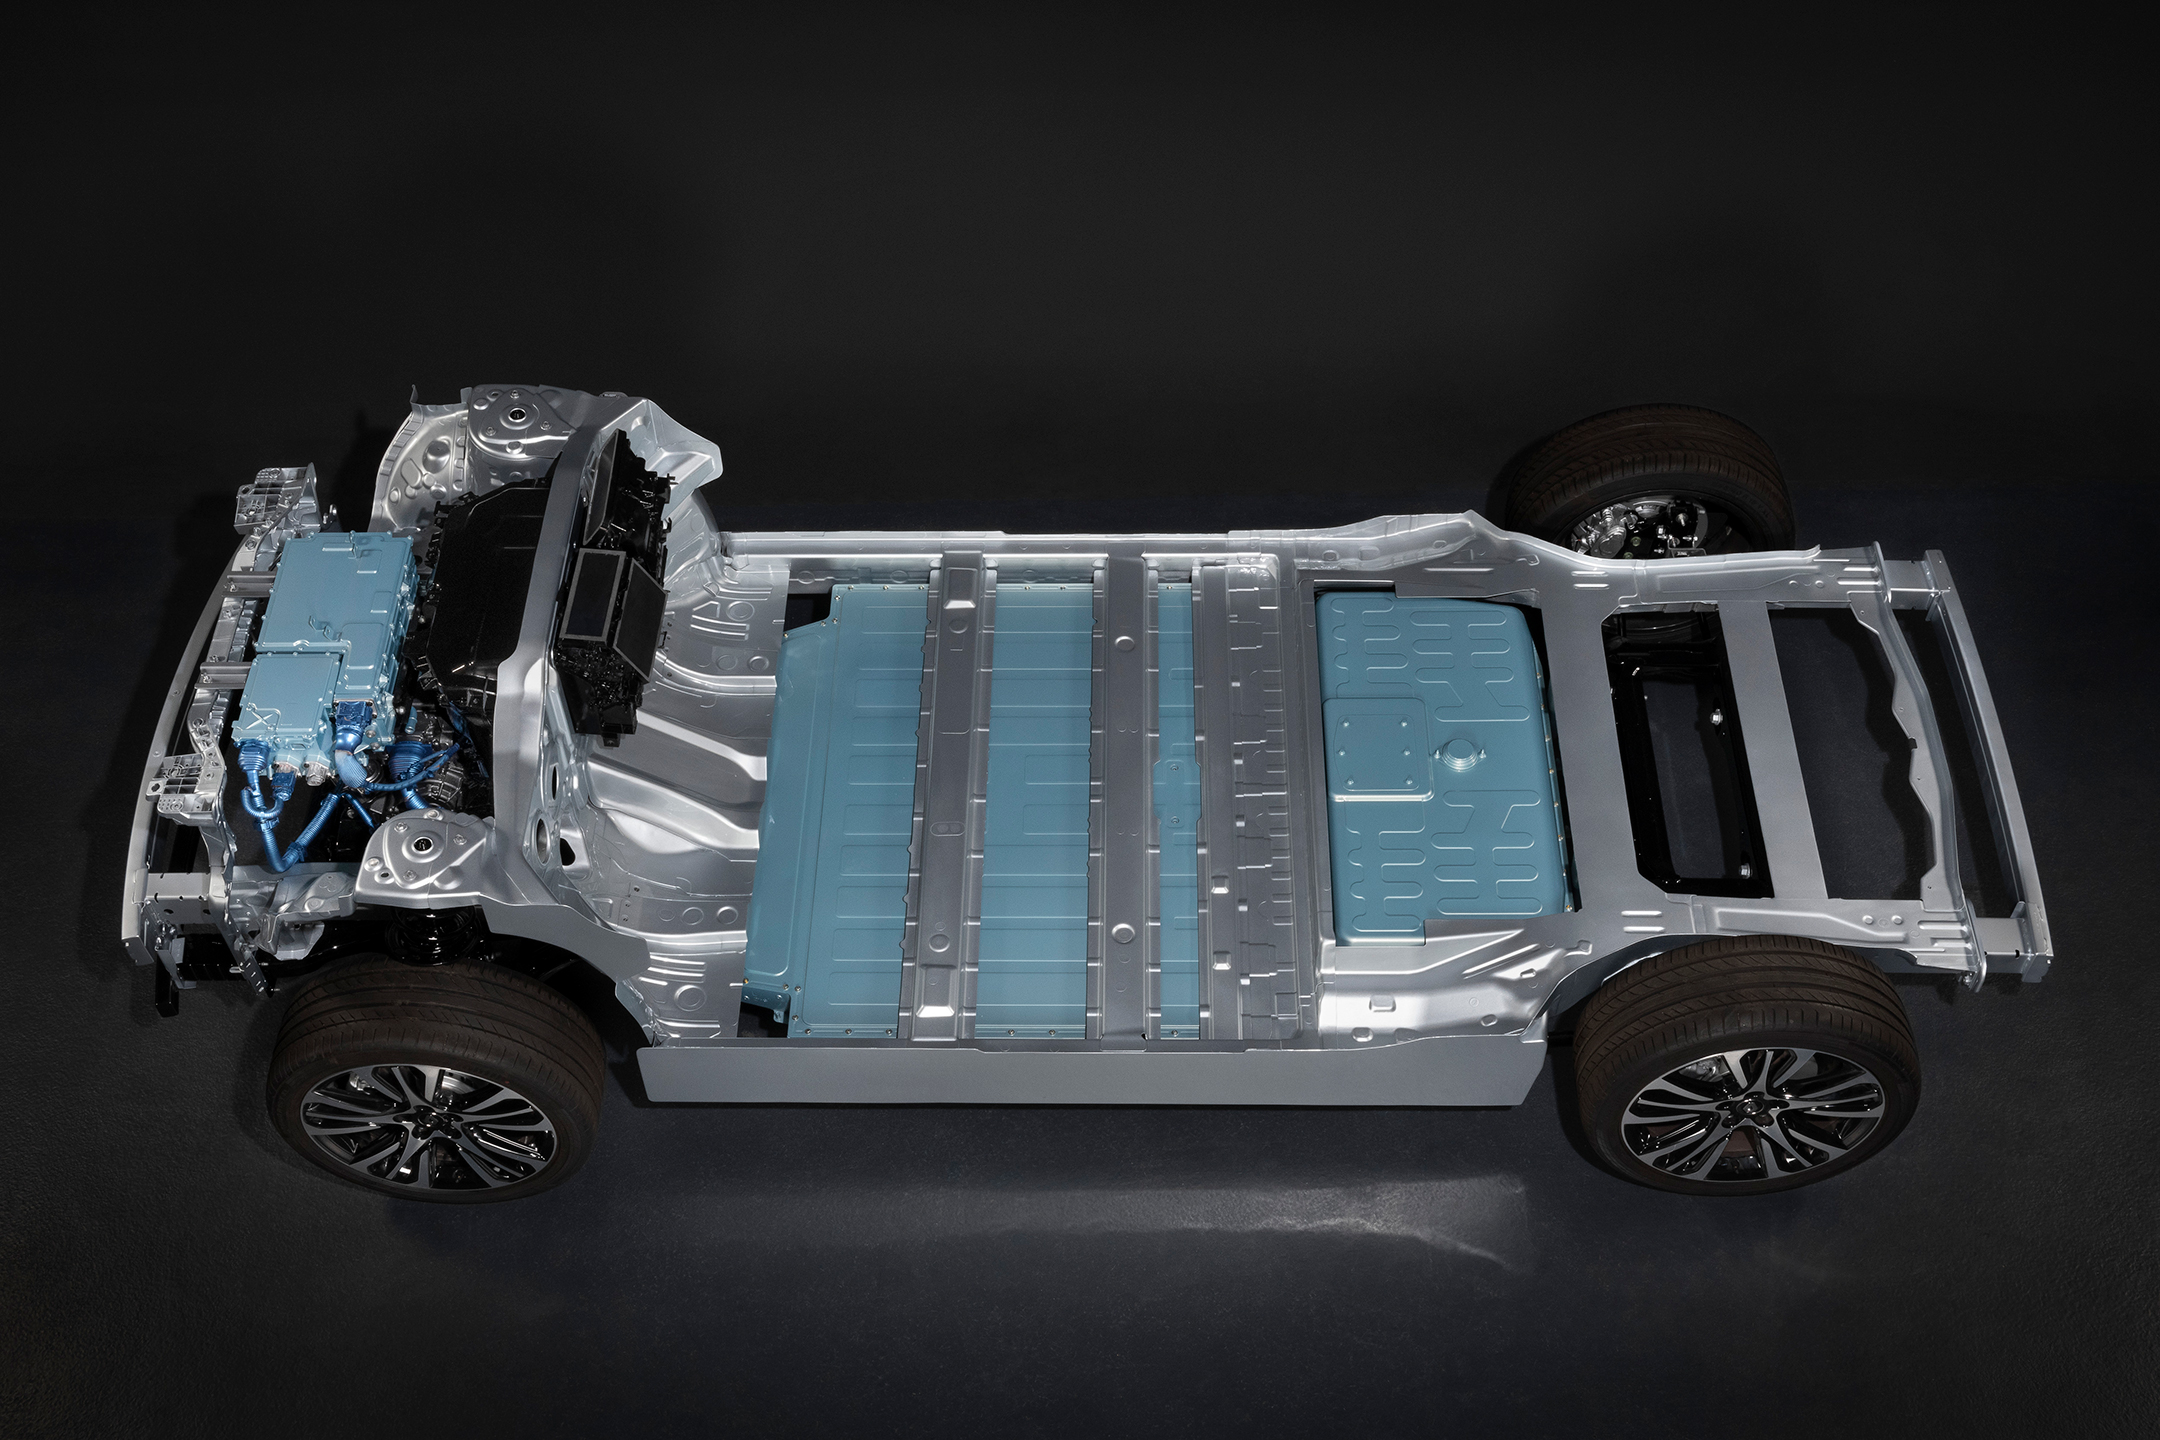 Renault Mégane eVision show-car - 2020 - CMF-EV - plateform / plateforme - Common Module Family - Electric Vehicle